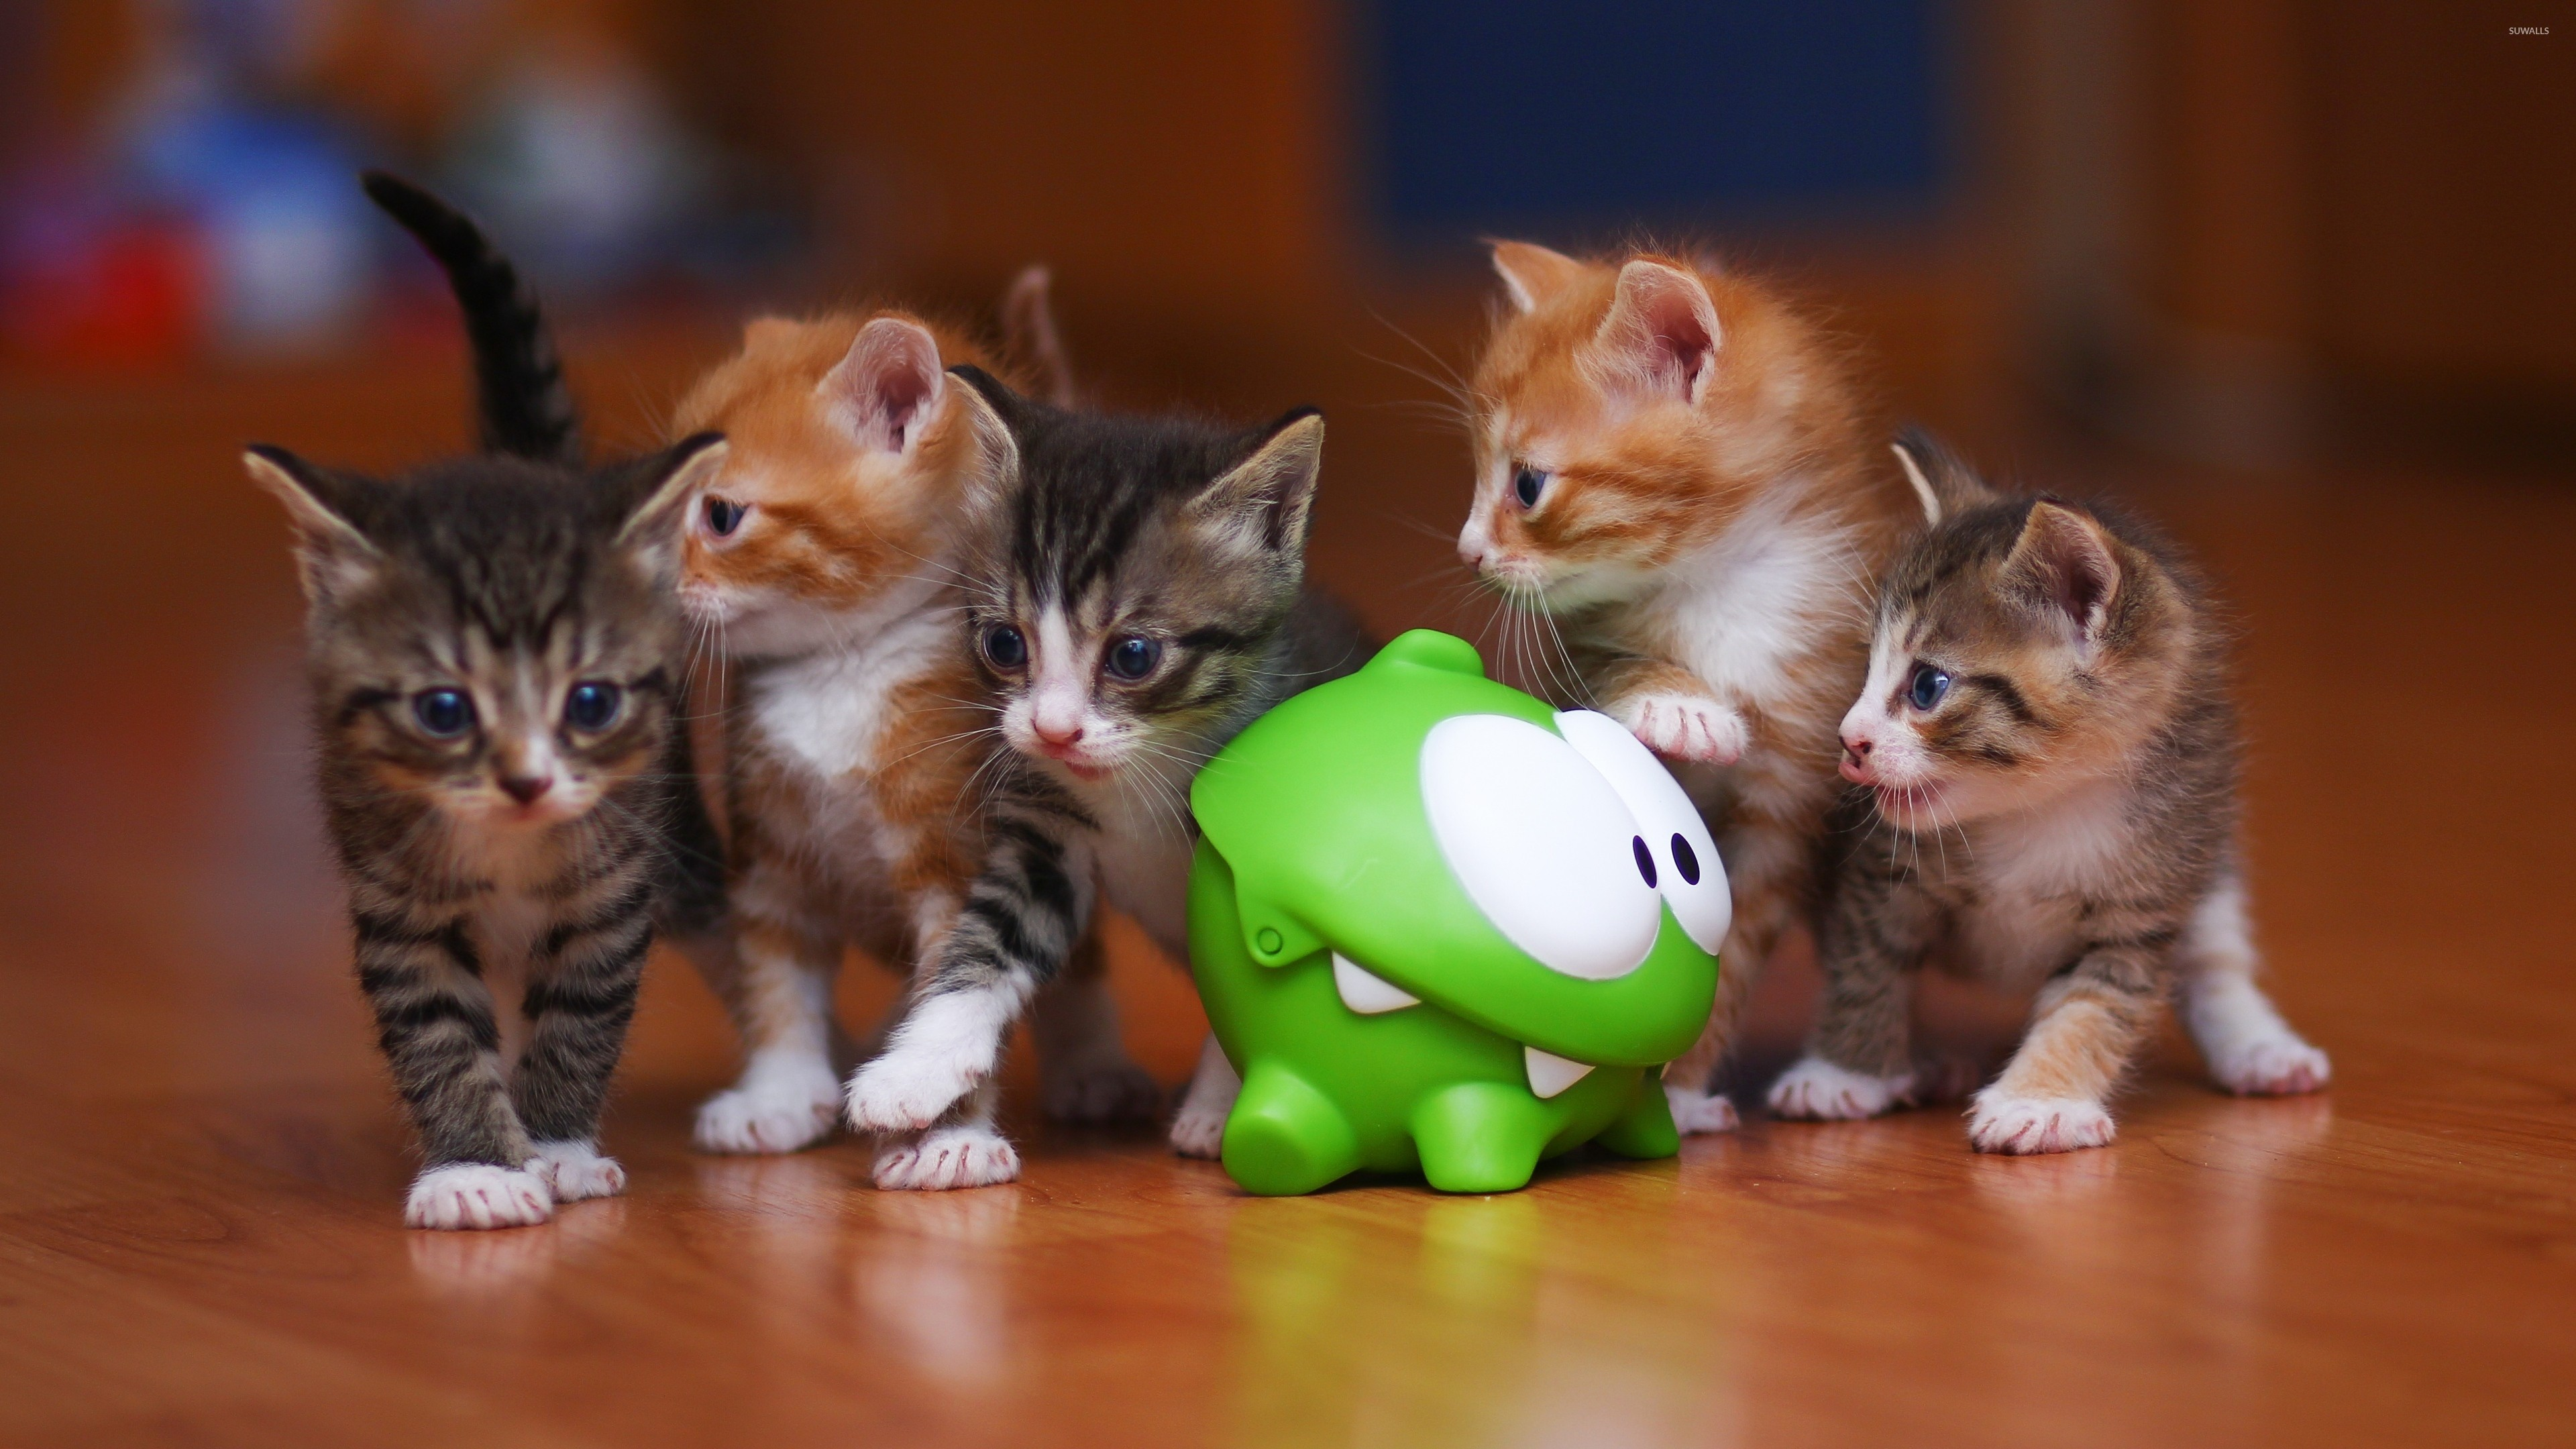 Cute Wallpapers Toast Kittens Wallpaper 183 ① Download Free Stunning Full Hd